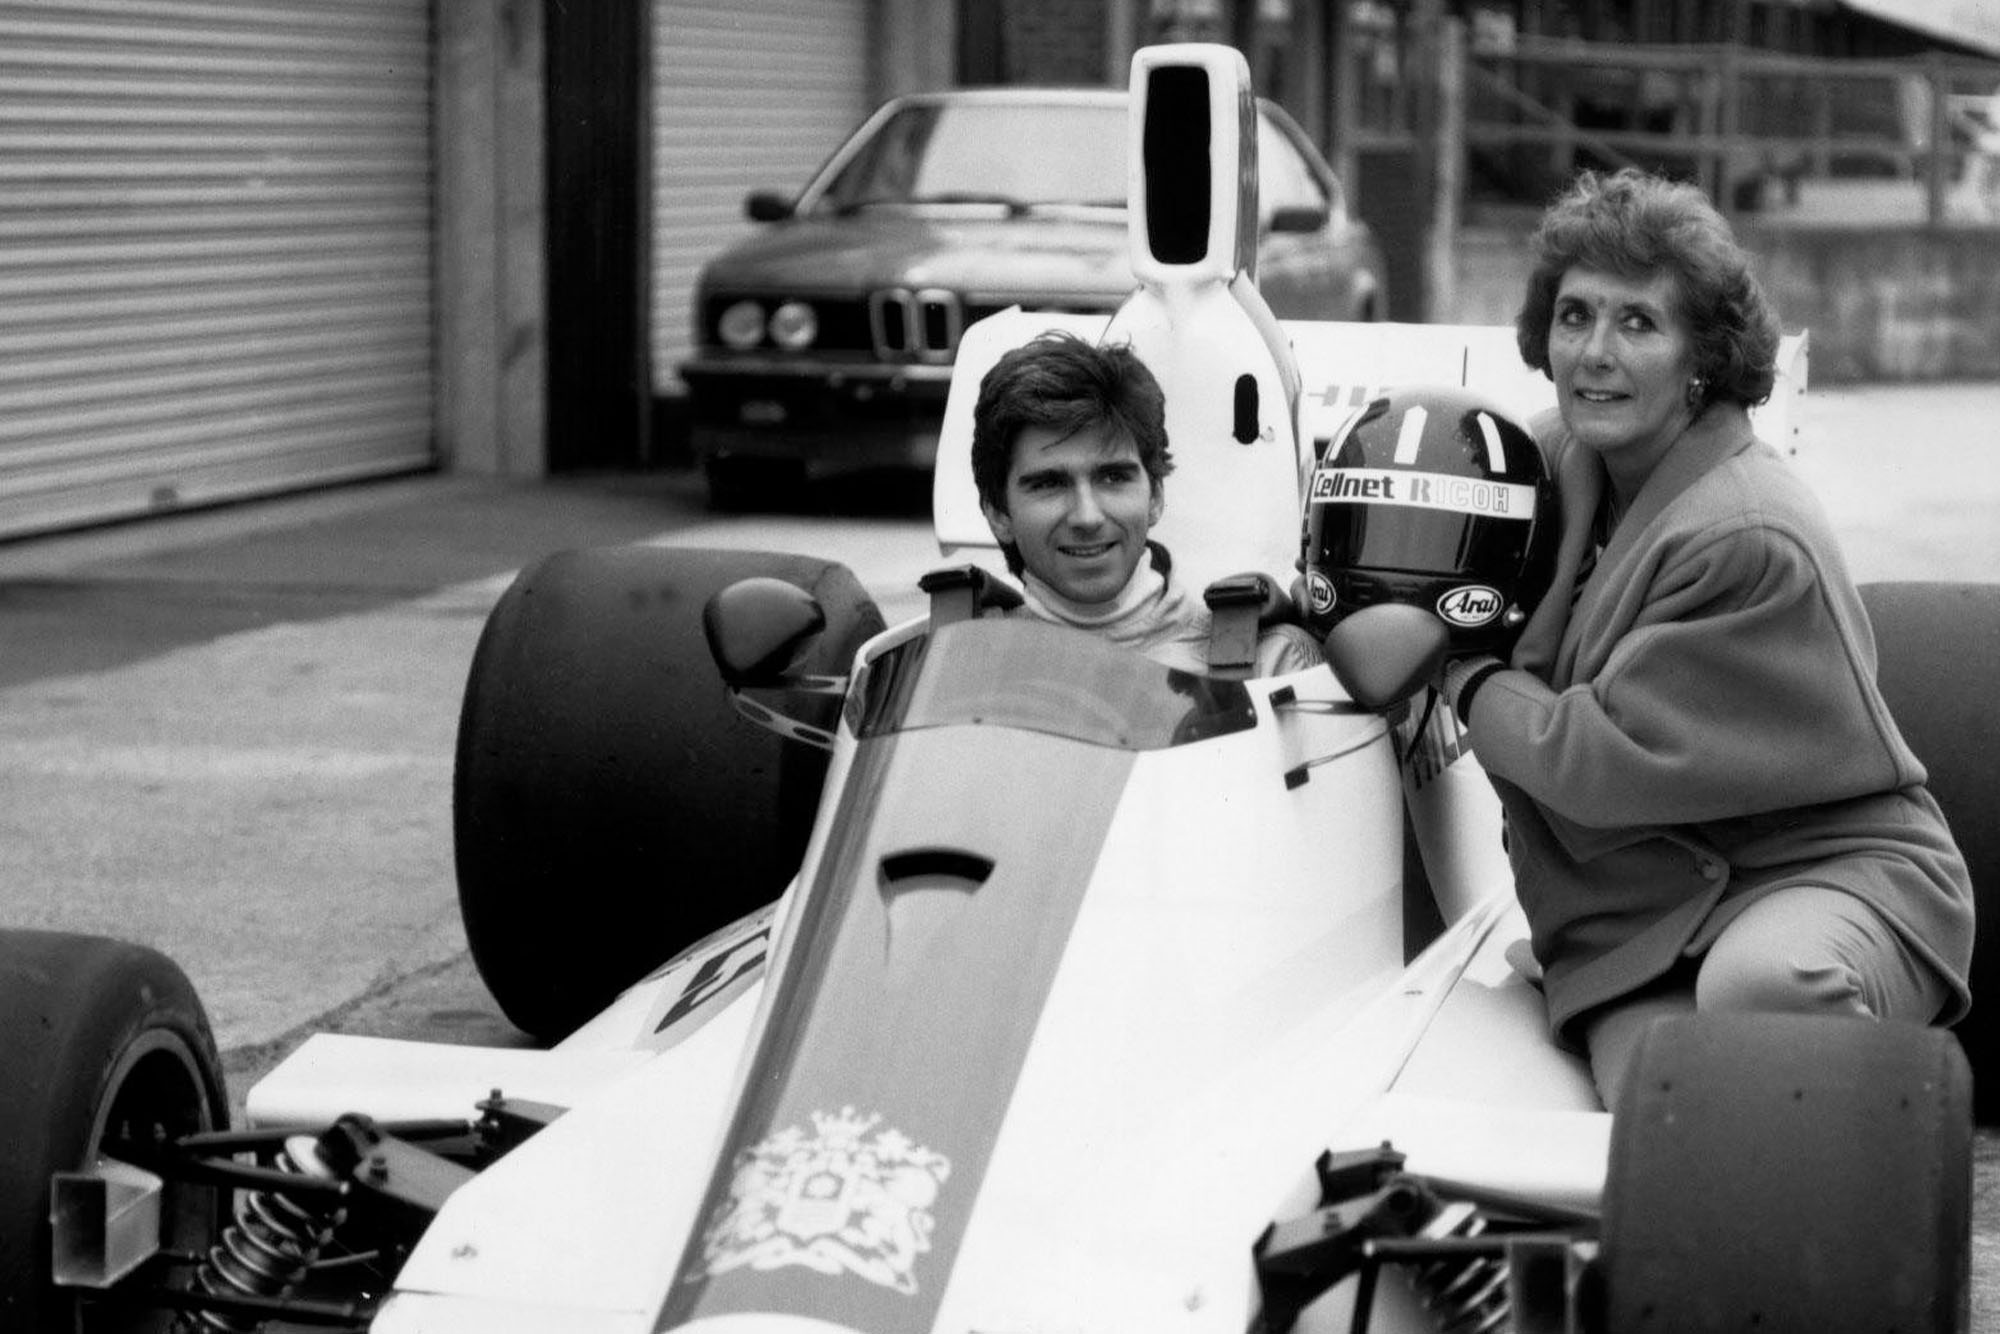 Damon Hill Formula One Grand Prix Motor Racing Car Driver and World Champion 1996 pictured in 1987 with his mother Betty at Silverstone where he drove his father Graham's own Formula One Grand Prix car the Hill GH2 for the first (and probably last) time. (Photo by John Roan /Mirrorpix/Getty Images)